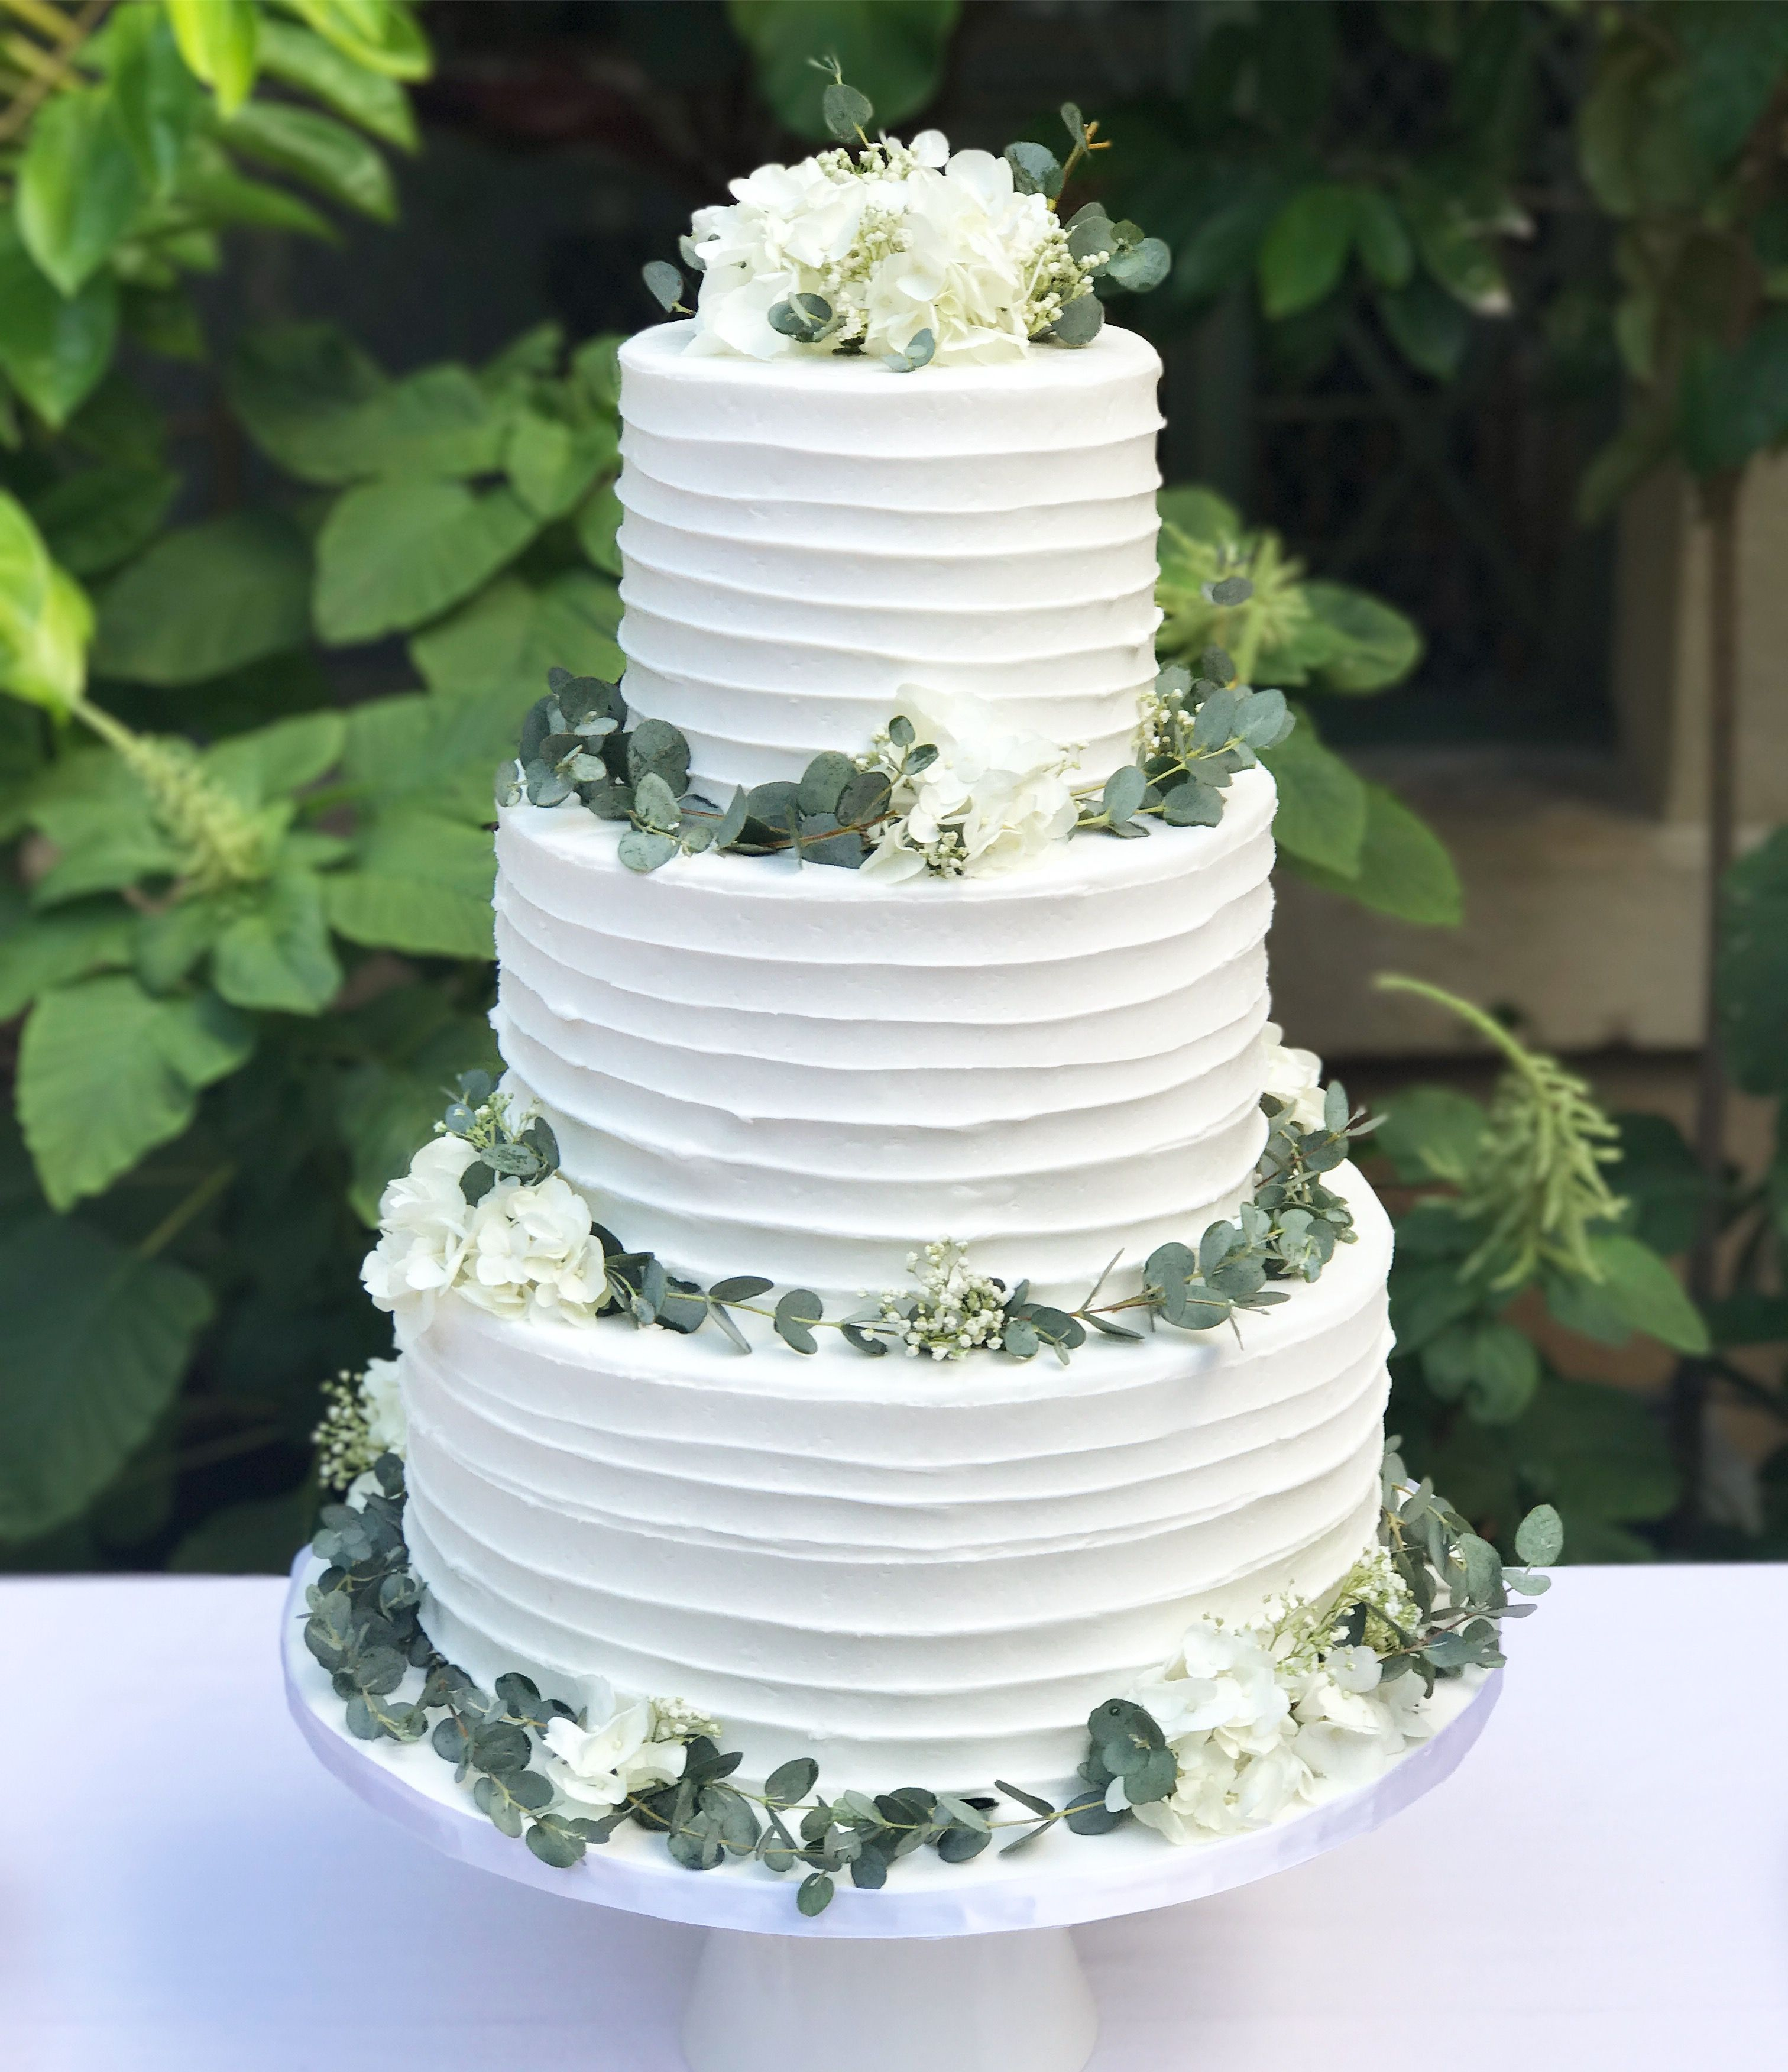 Greenery Wedding Greenery And Botanical Themed Party This Cake